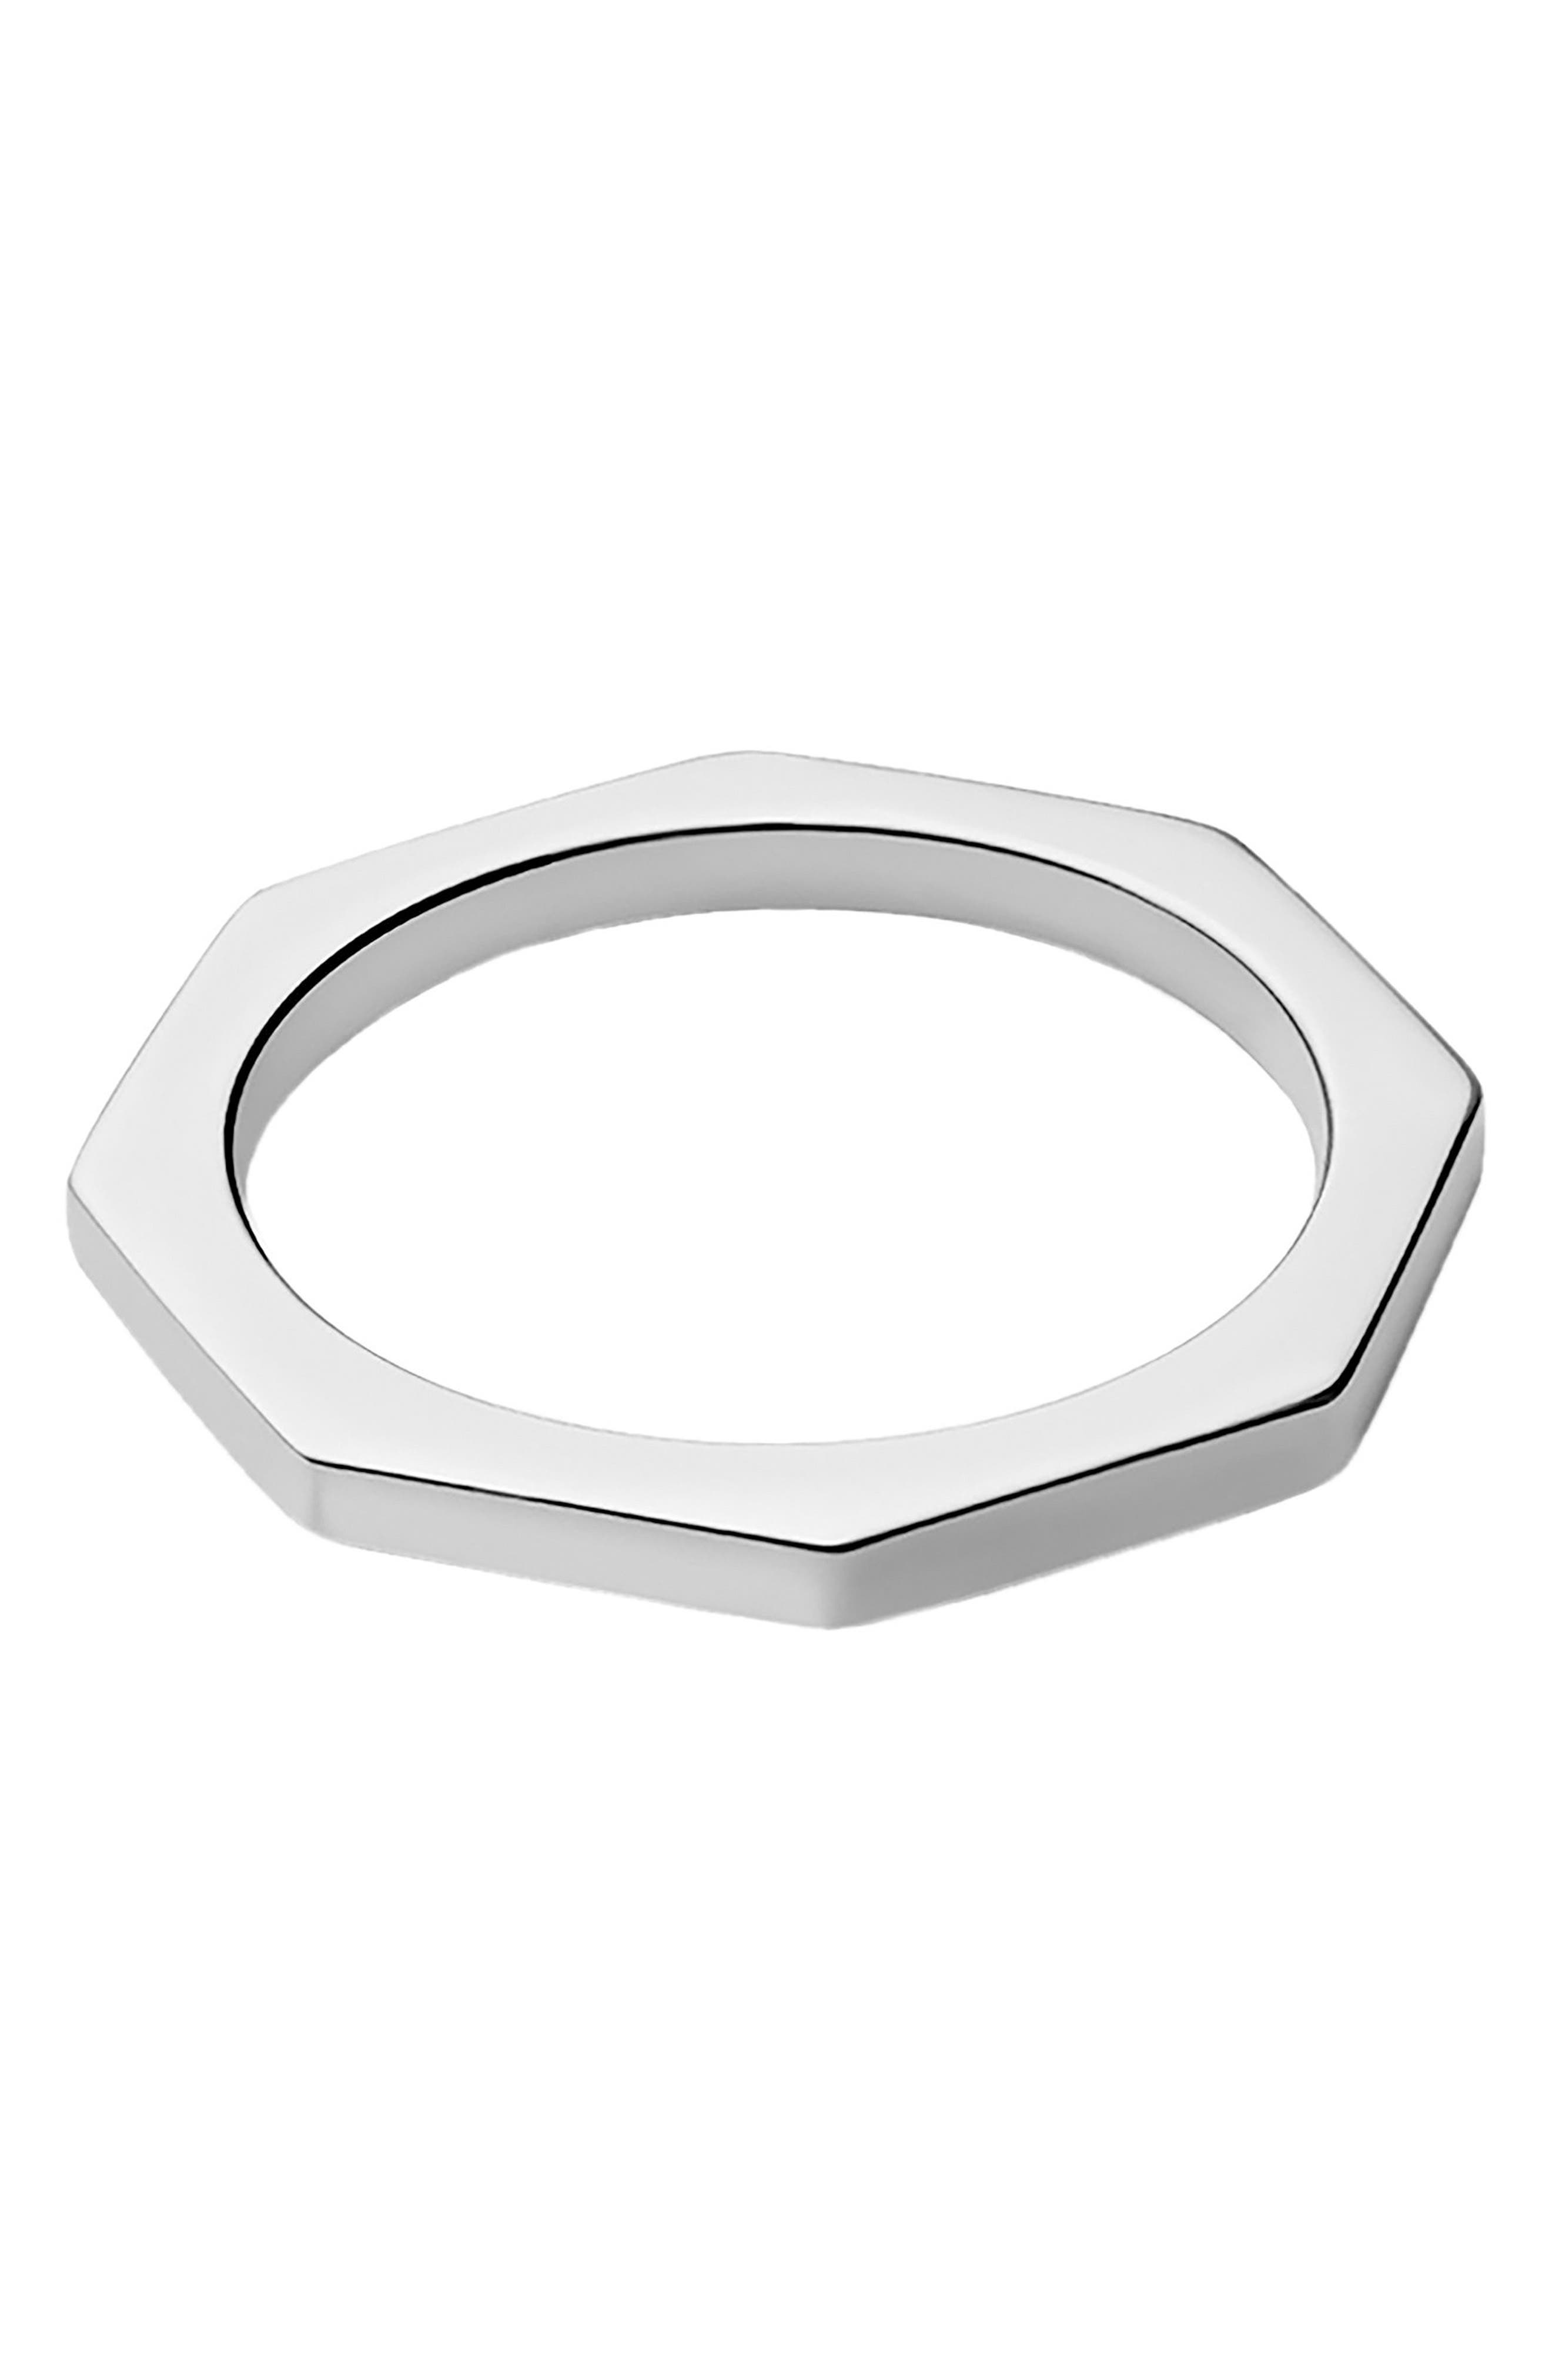 Bly Ring,                         Main,                         color, STERLING SILVER